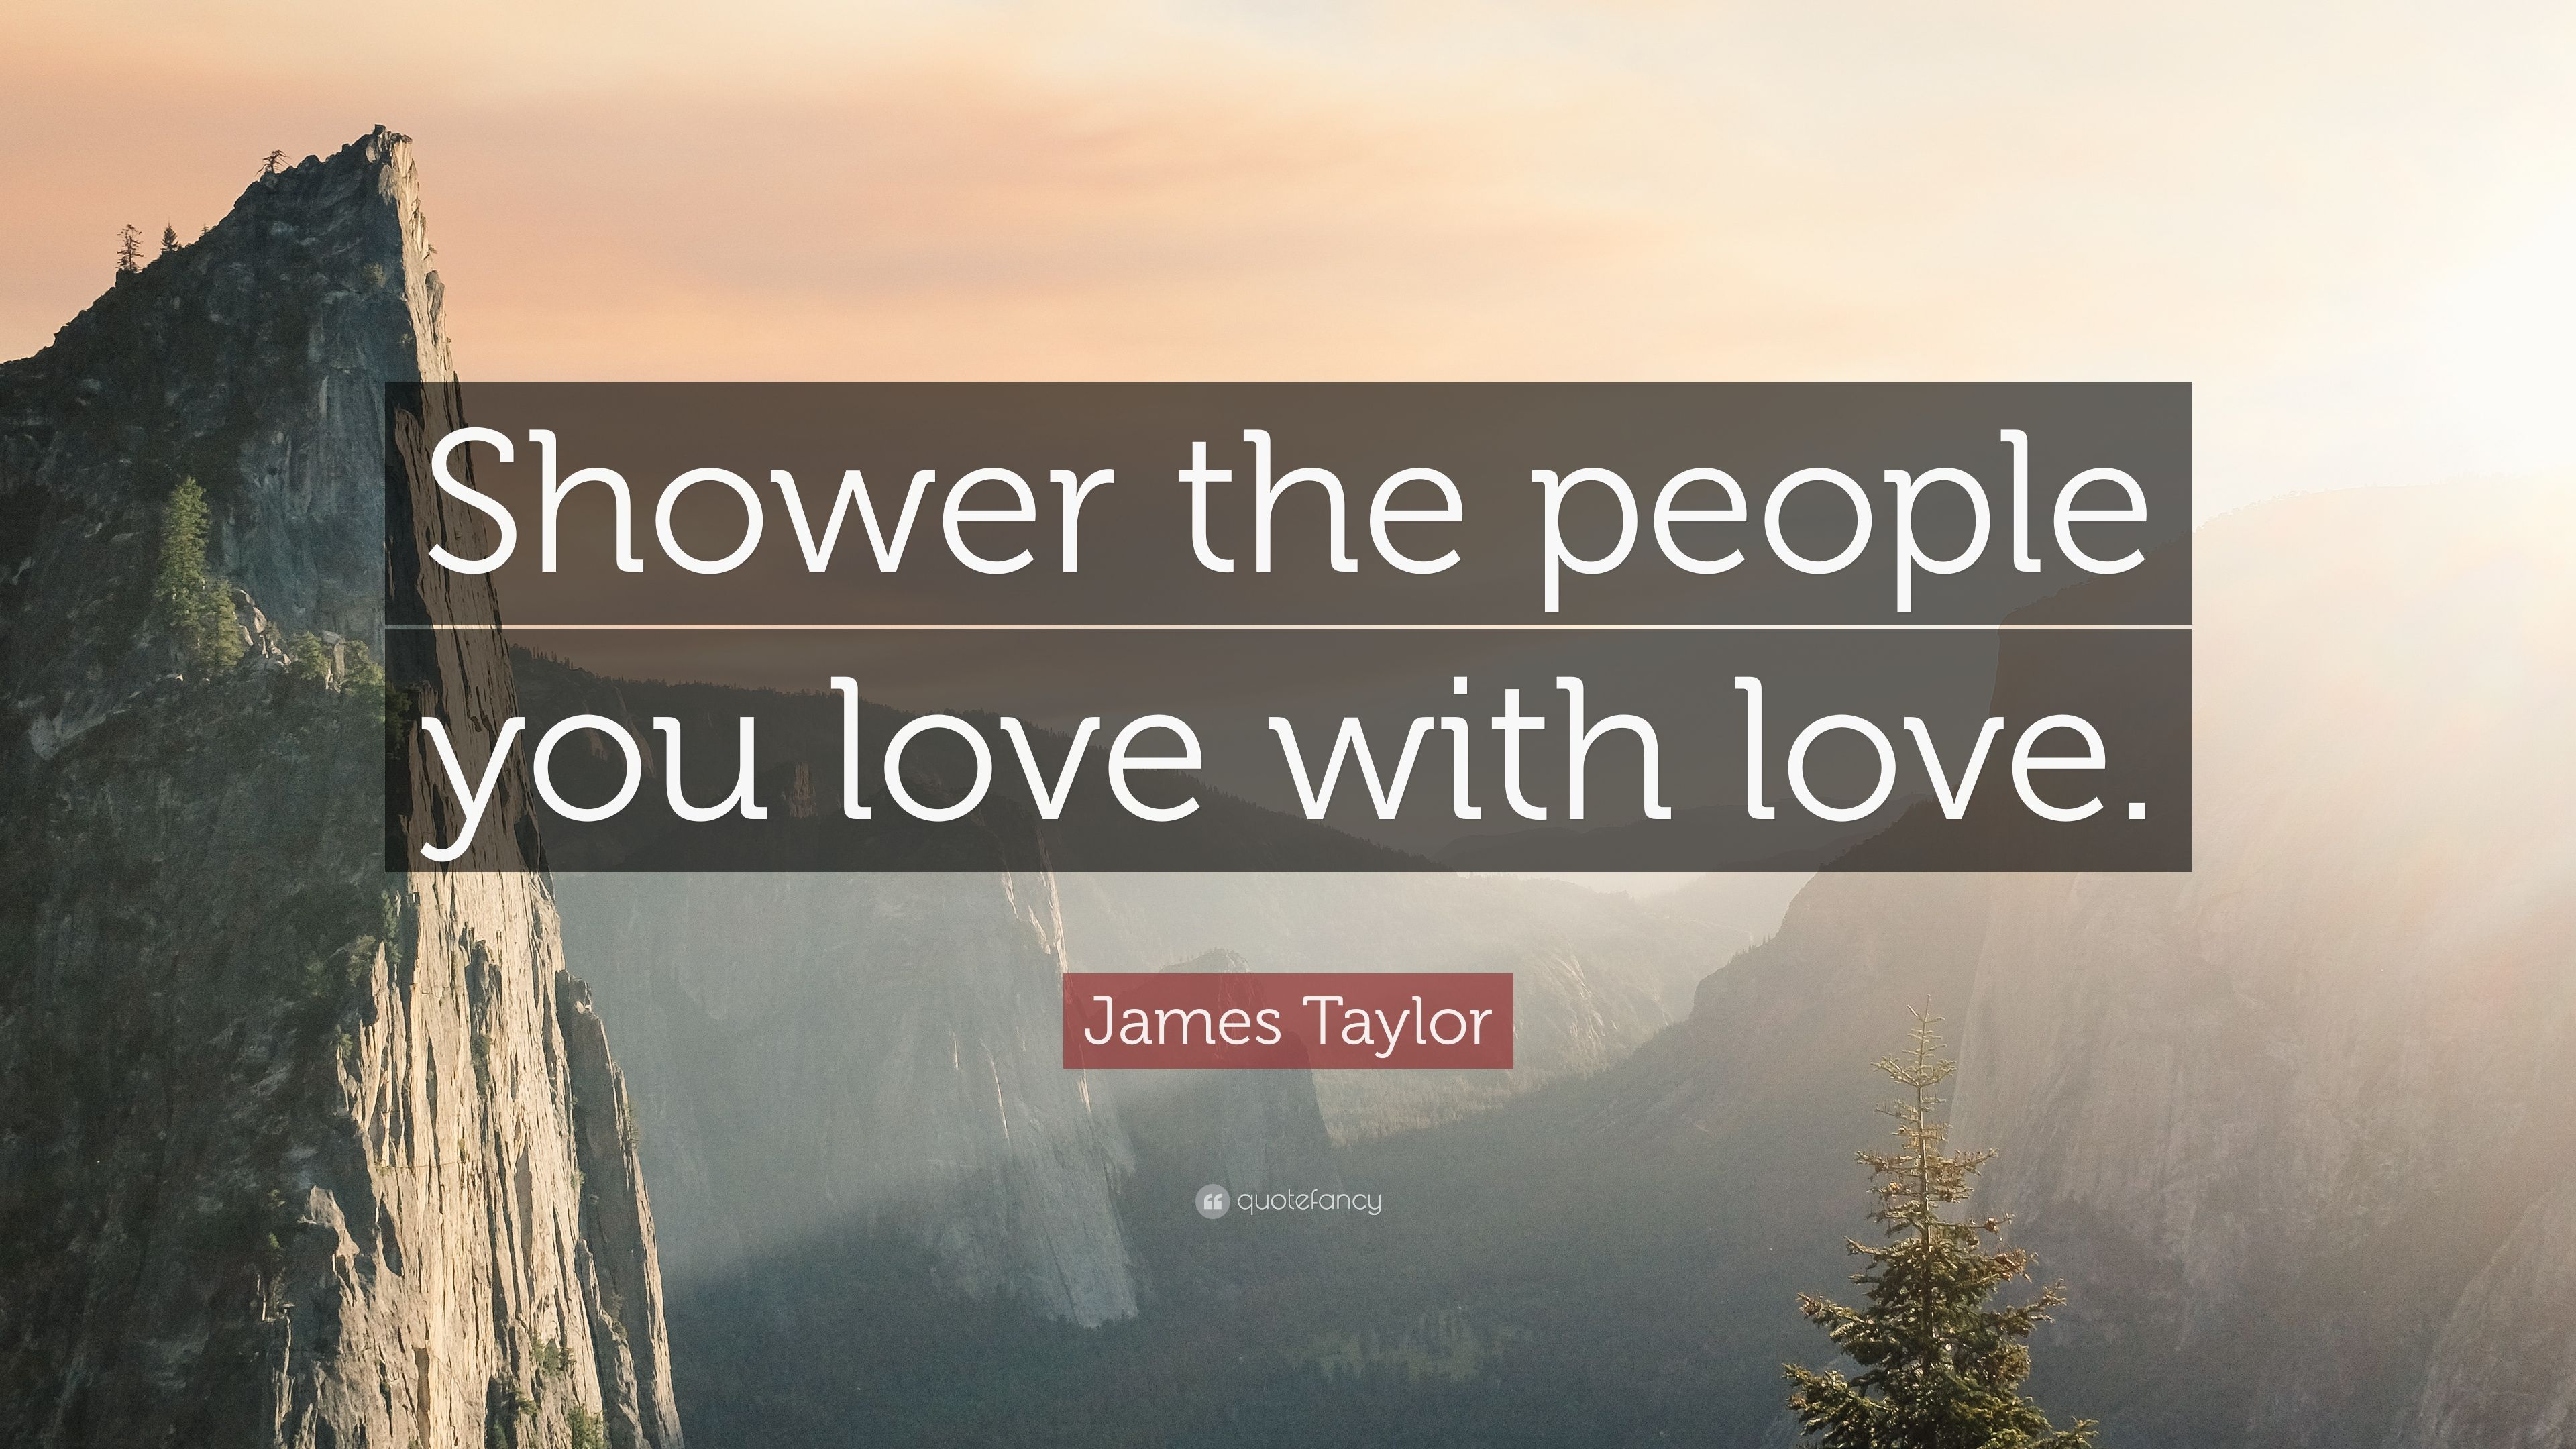 James Taylor Quote: Shower the people you love with love